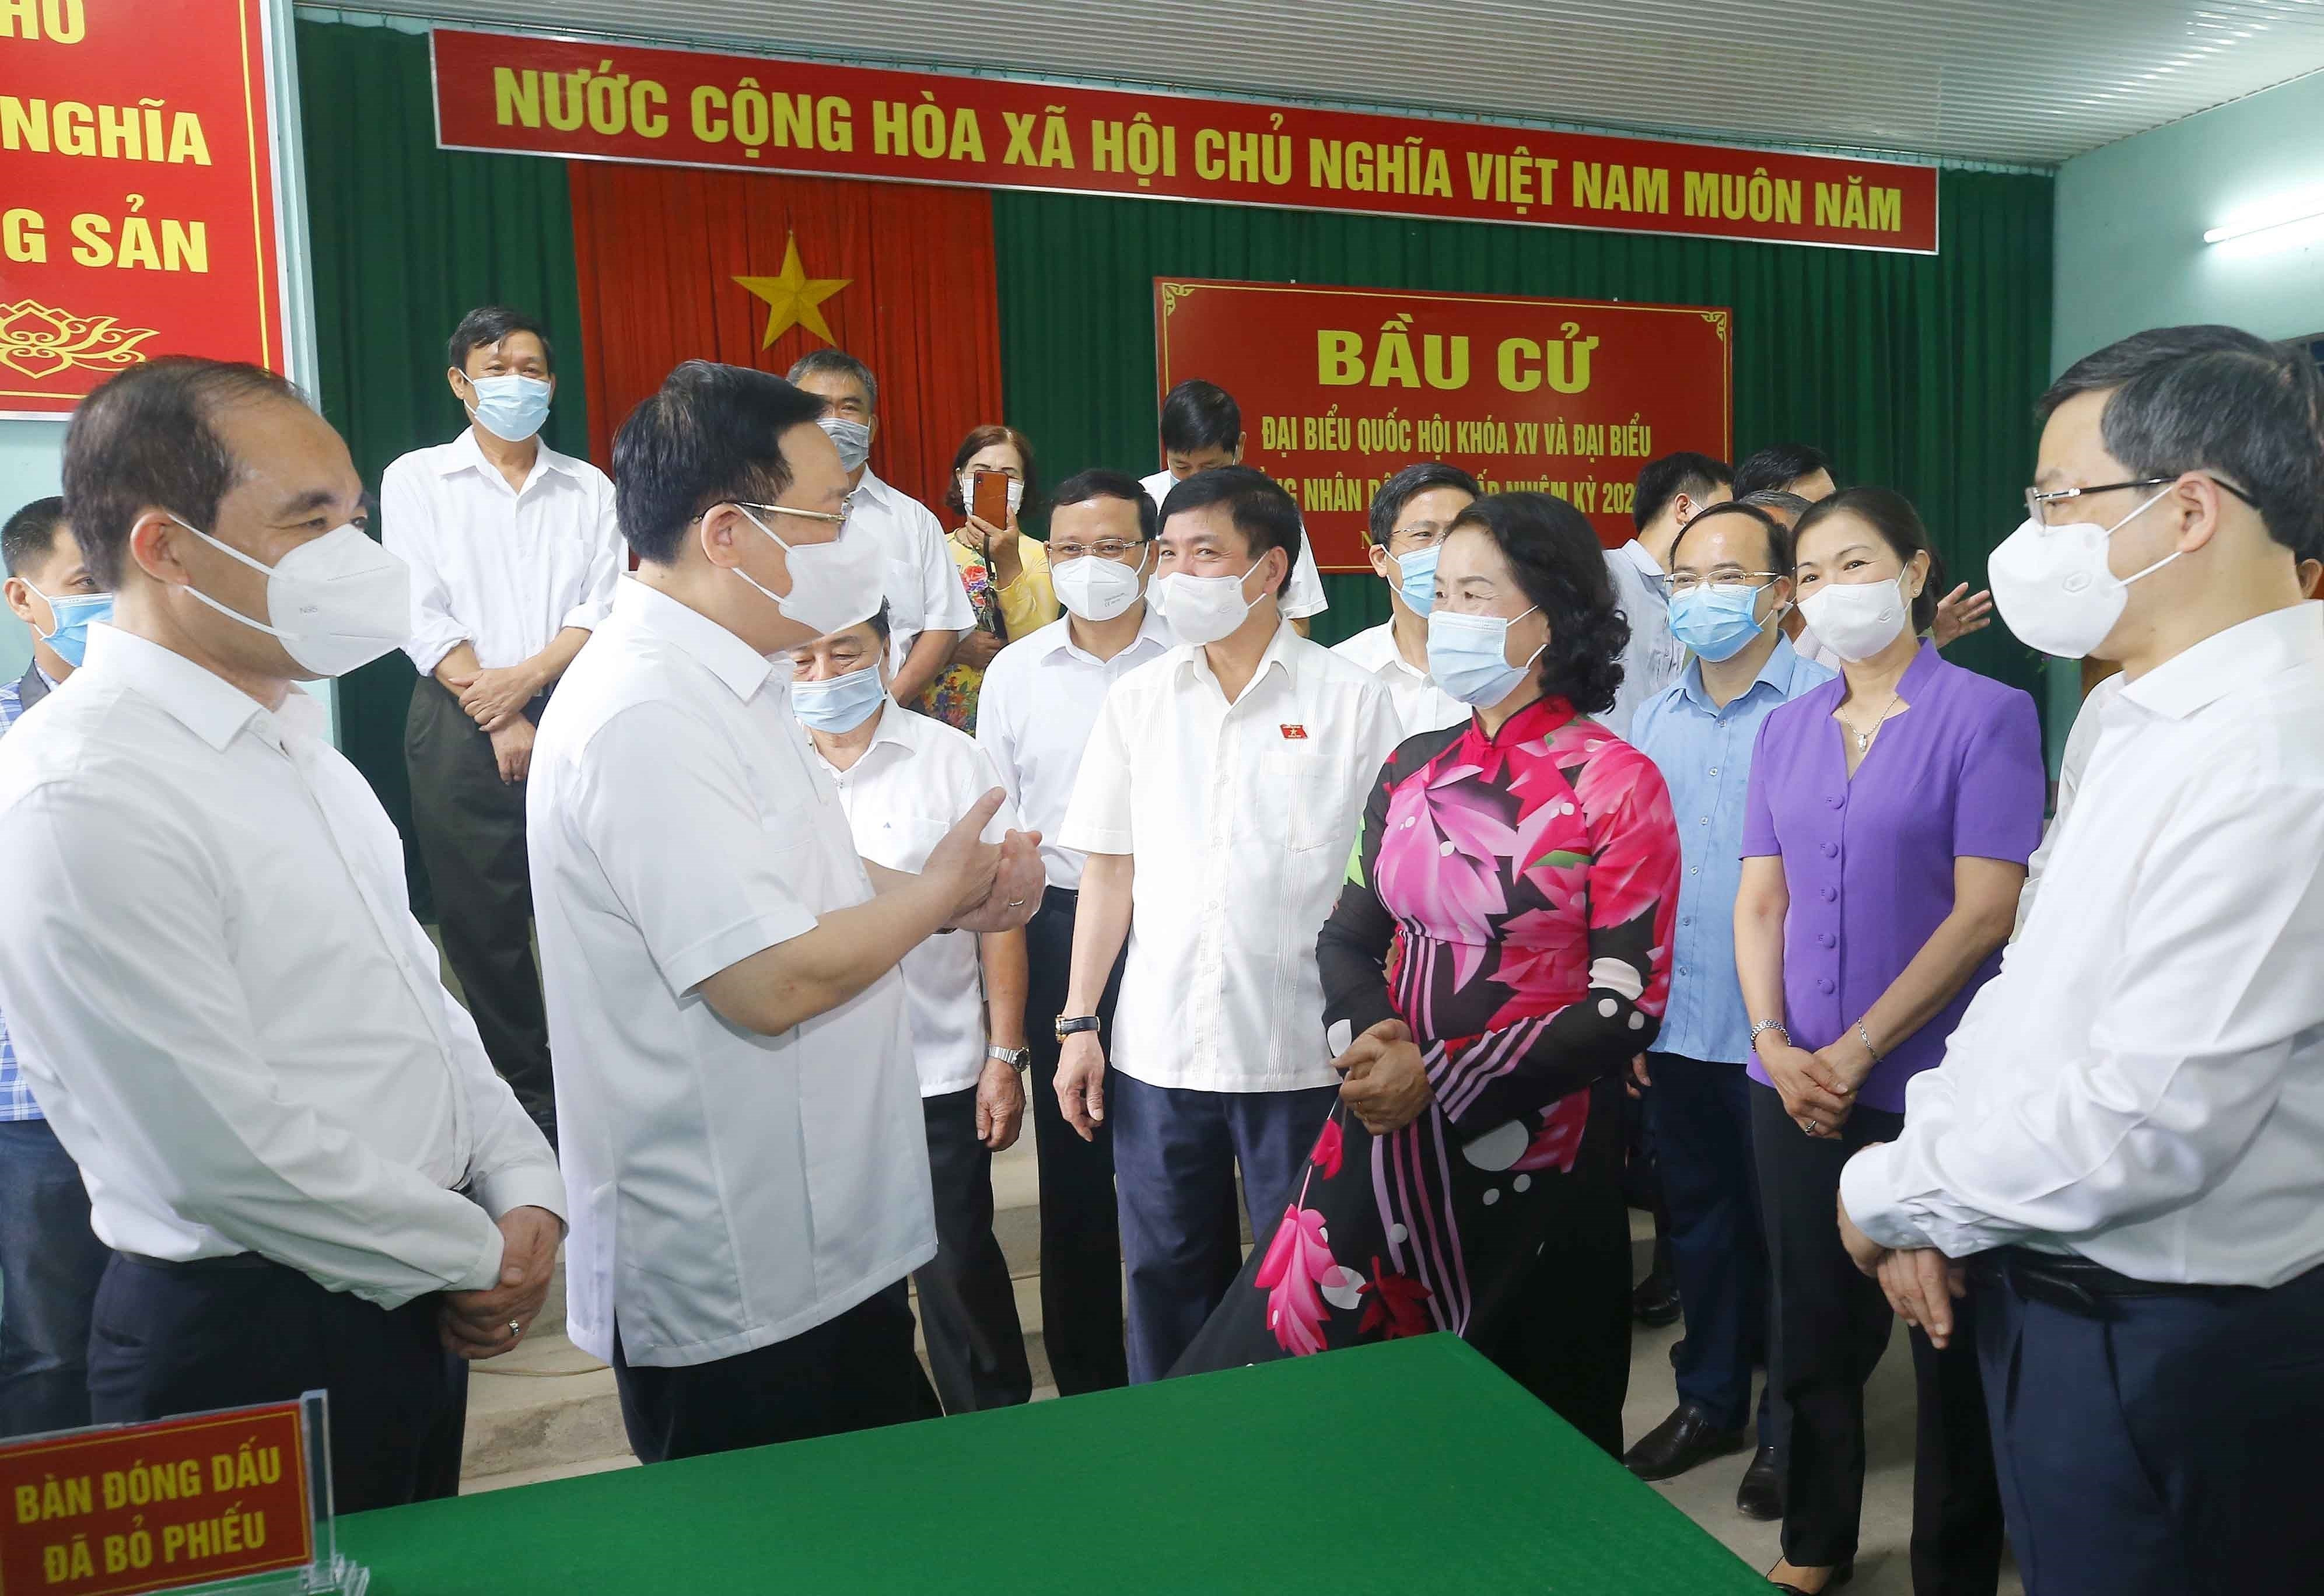 Legislative leader inspects election preparations in Tuyen Quang province hinh anh 1